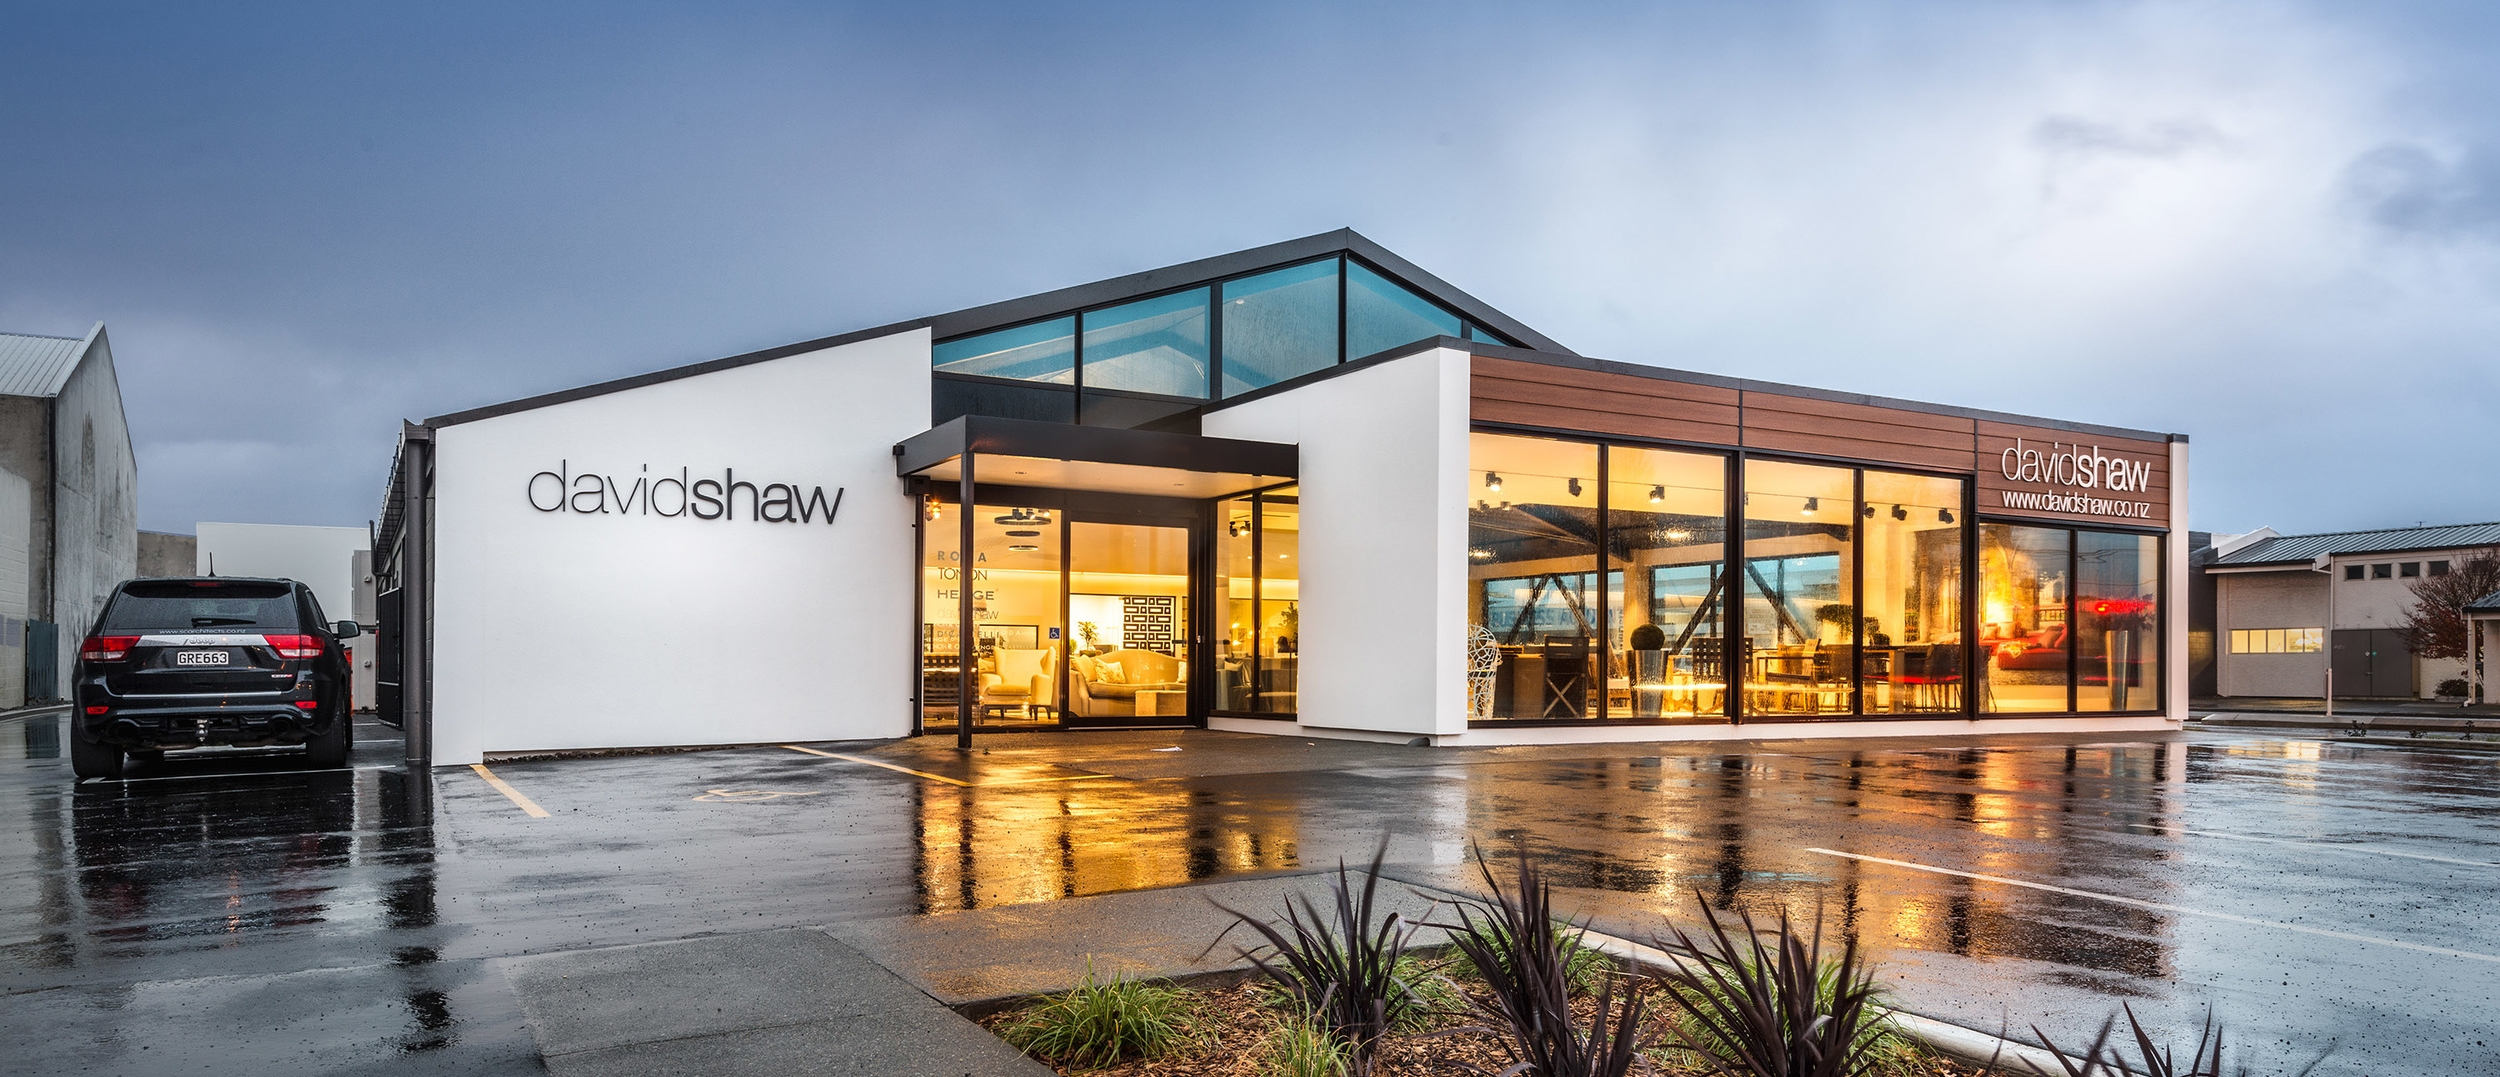 David Shaw Exterior - Commercial Design In Christchurch